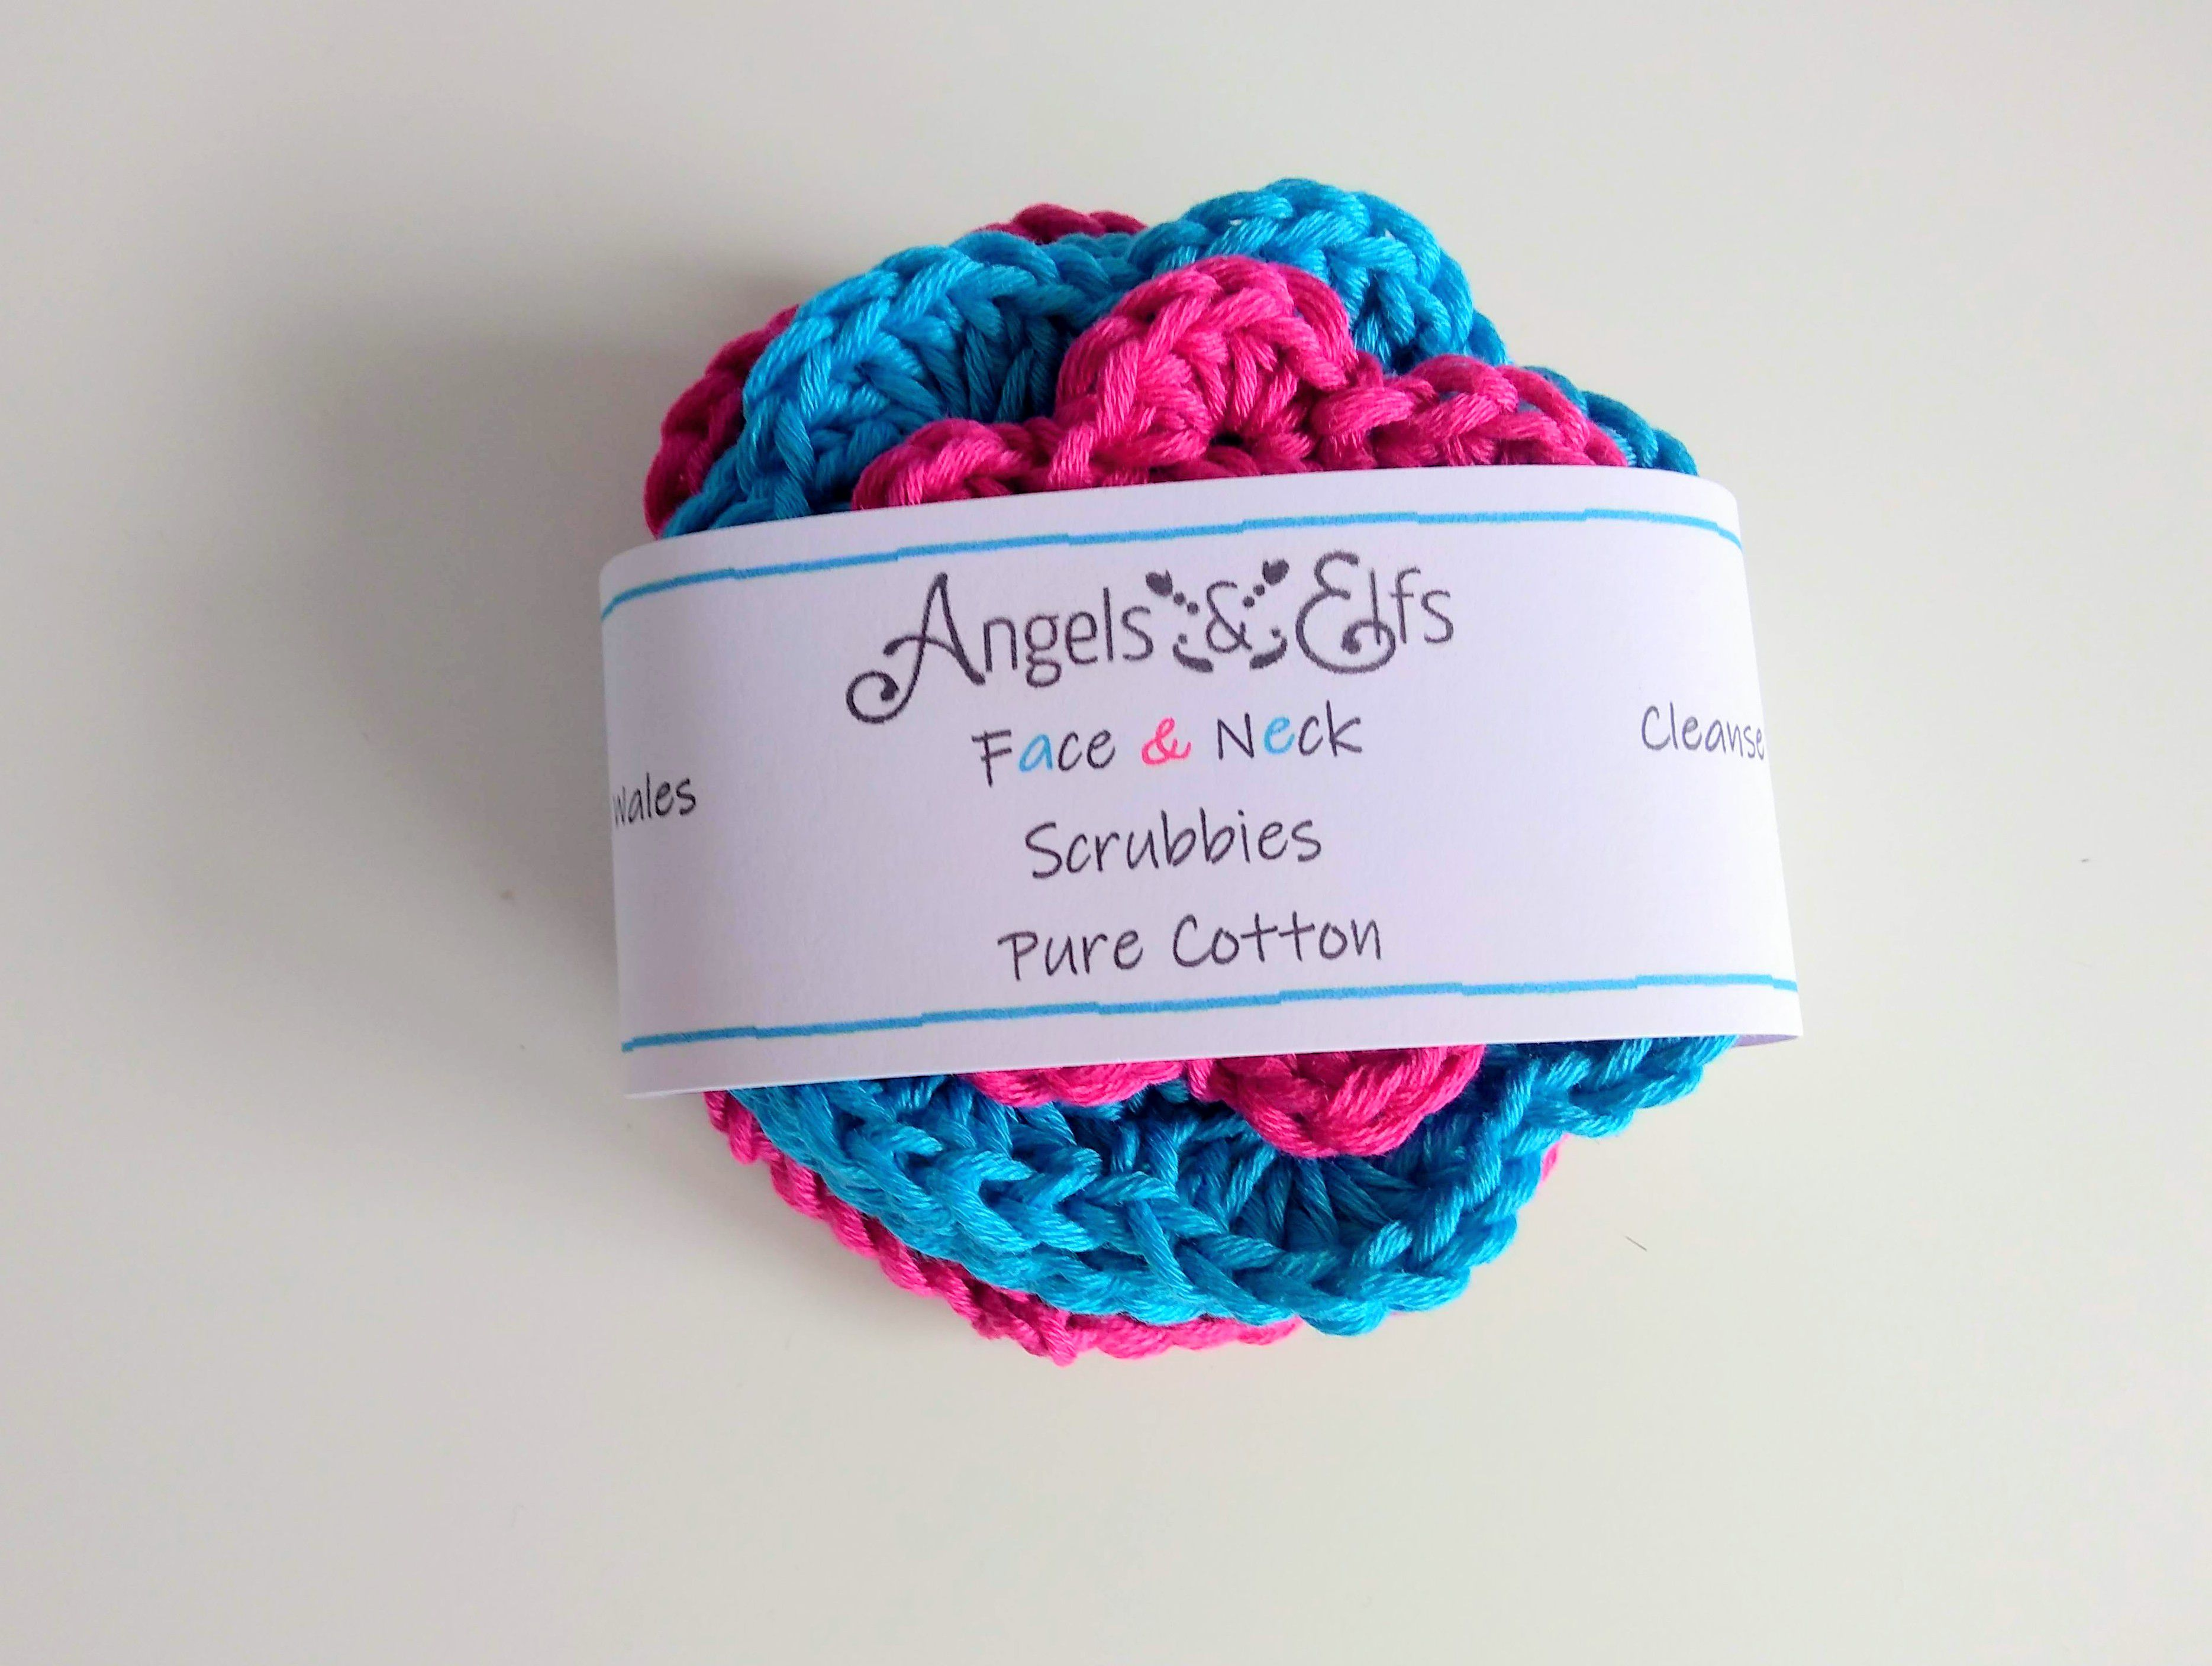 friendly scrubbies exfoliate cleanse and crochet pure eco handmade face neck cotton